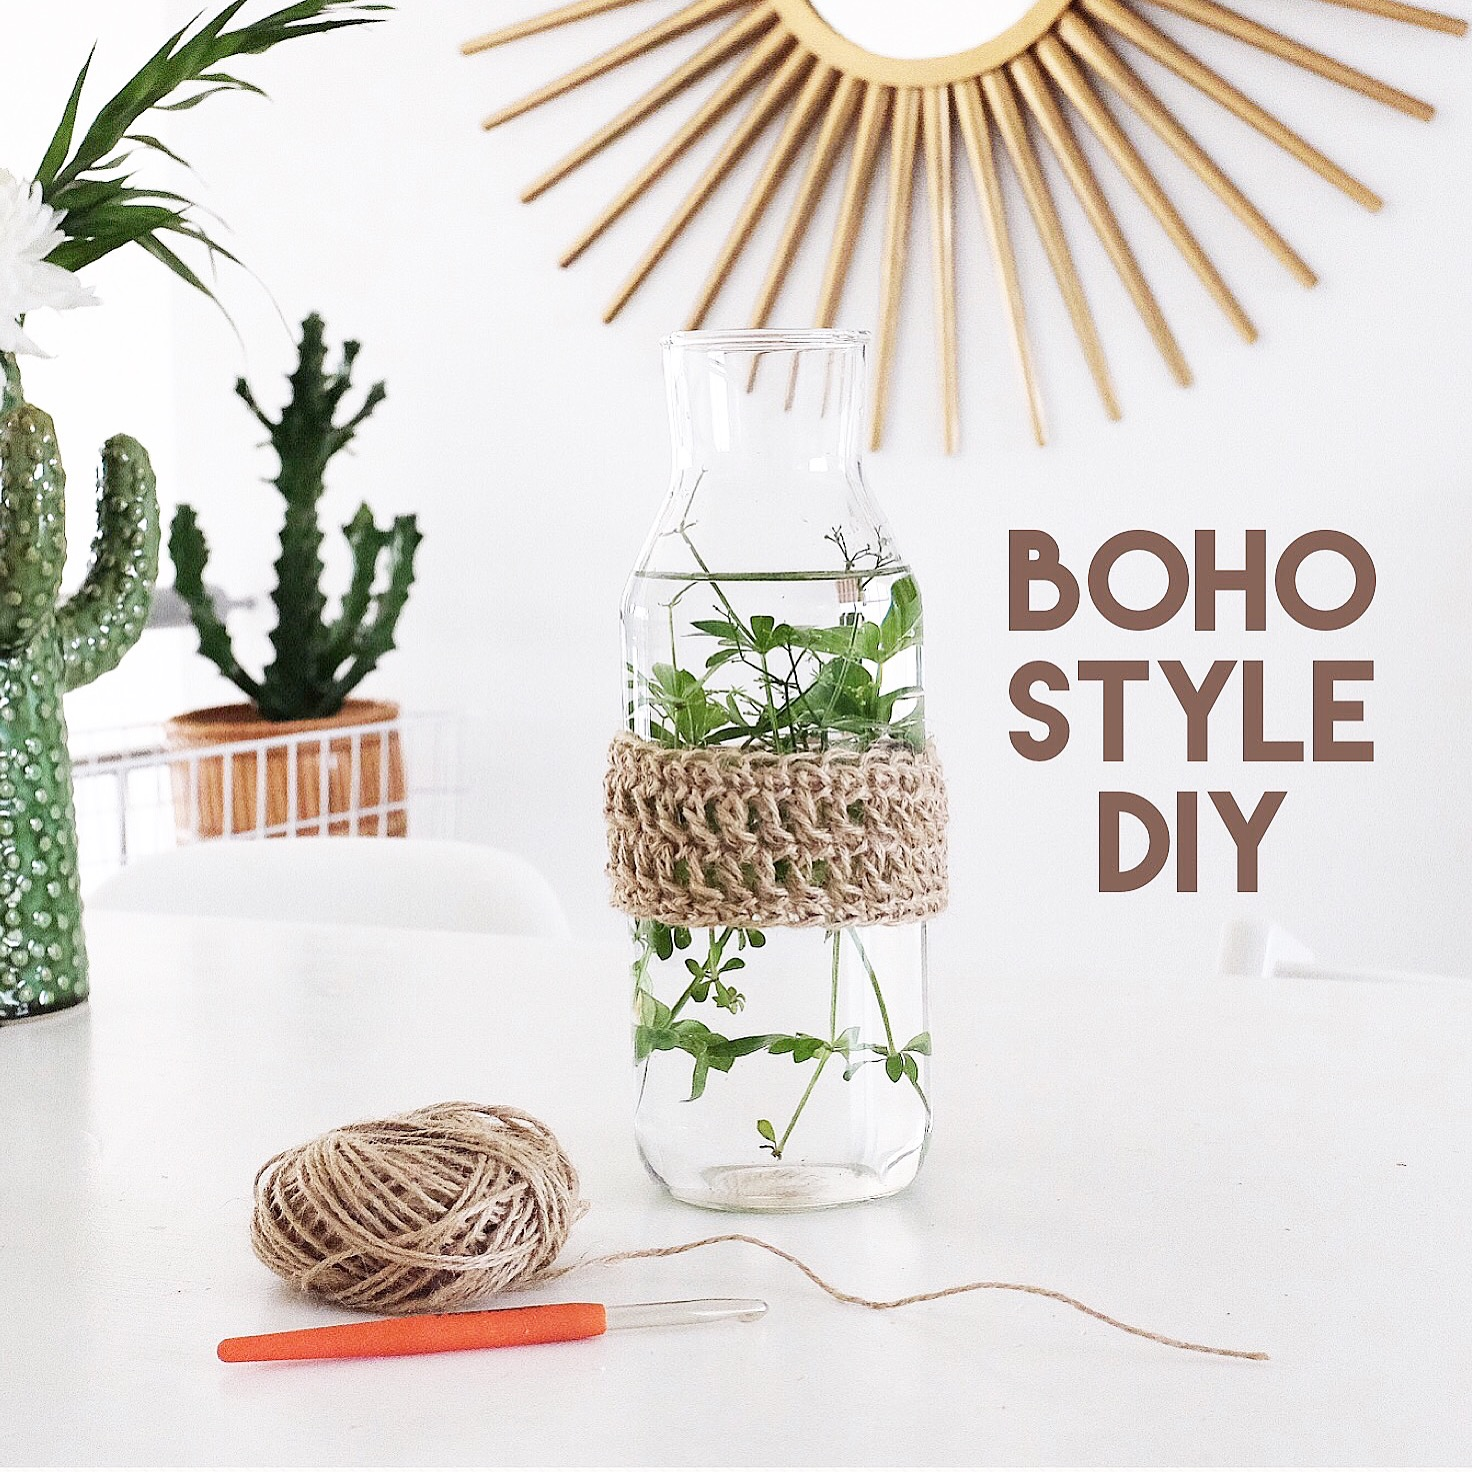 Diy boho style flaschen deko sophiagaleria for Design deko